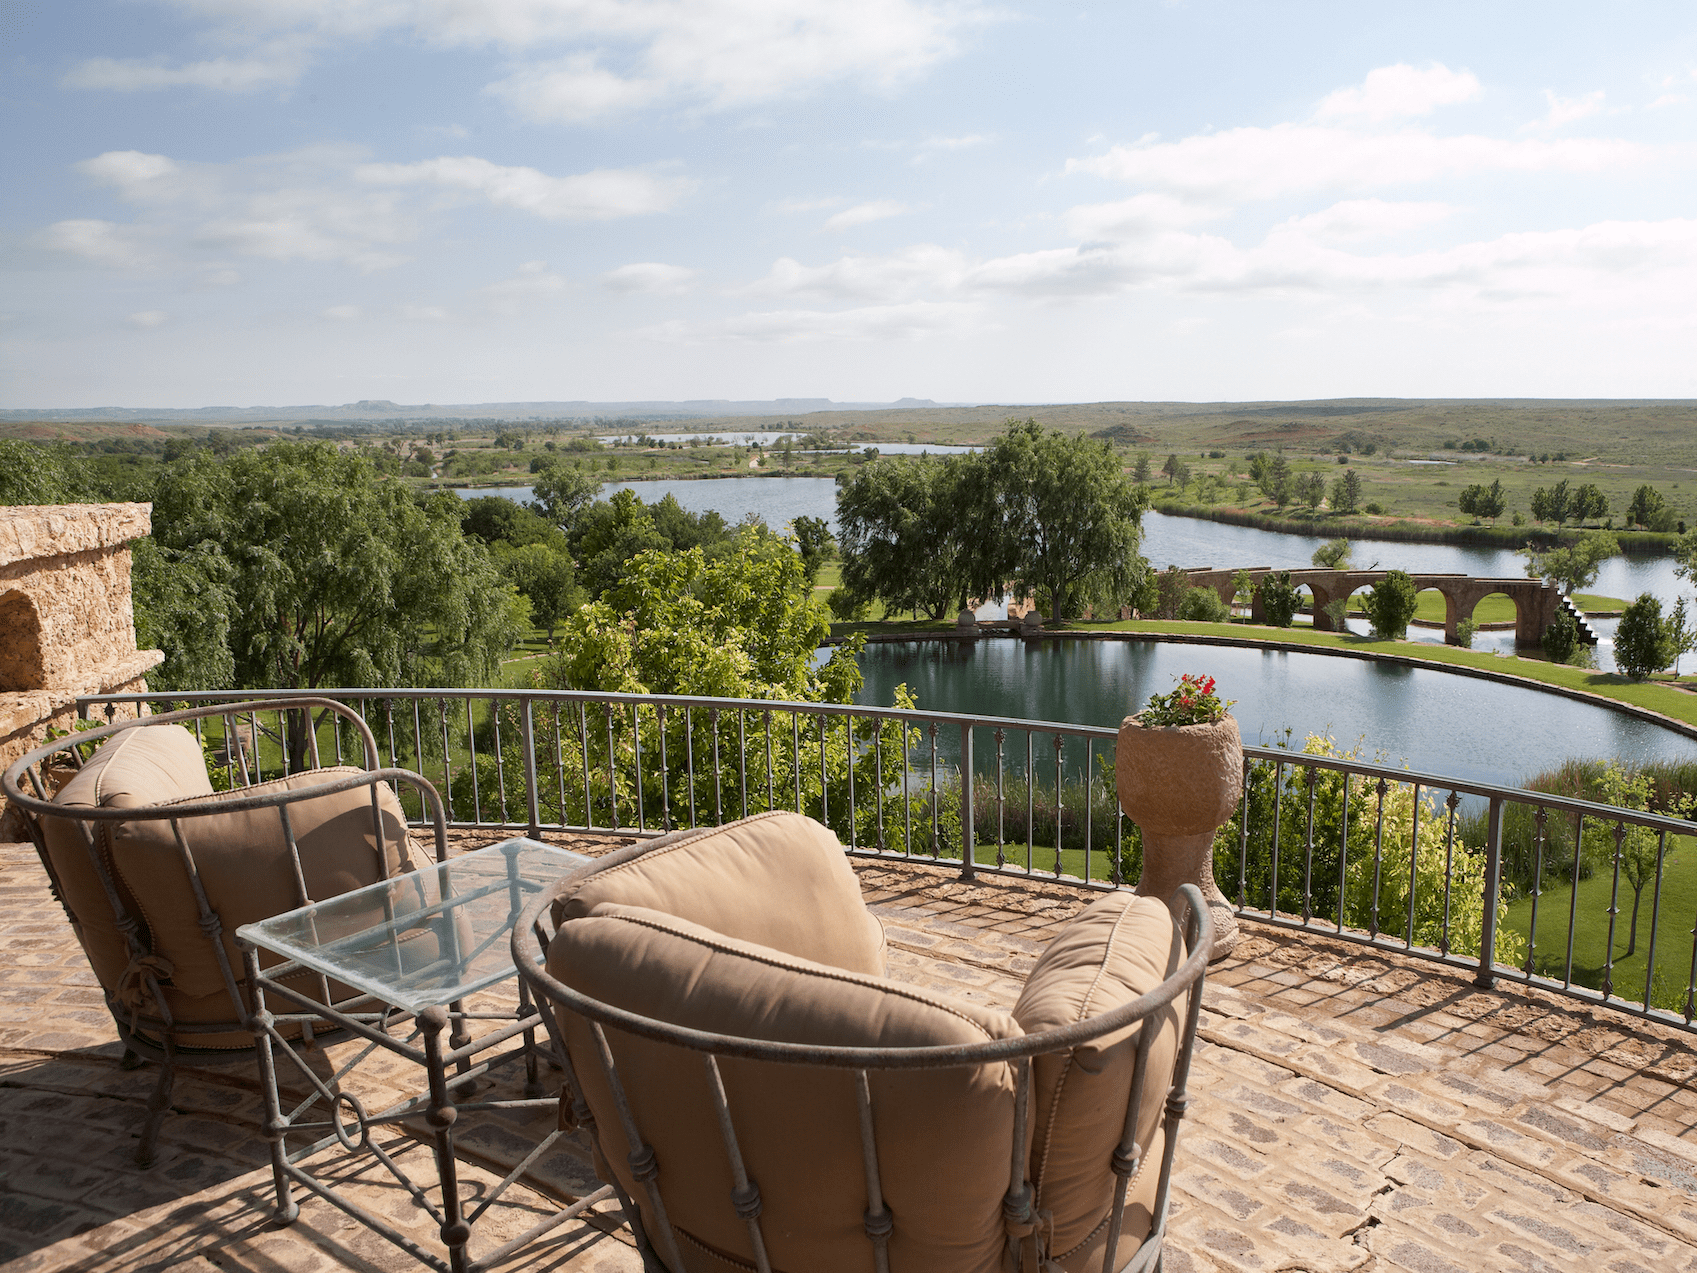 Mesa Vista is an oasis of luxury in the Texas prairie. It's being sold turnkey, meaning all furnishings and equipment — except for Pickens' personal belongings and art collection — are included in the sale.